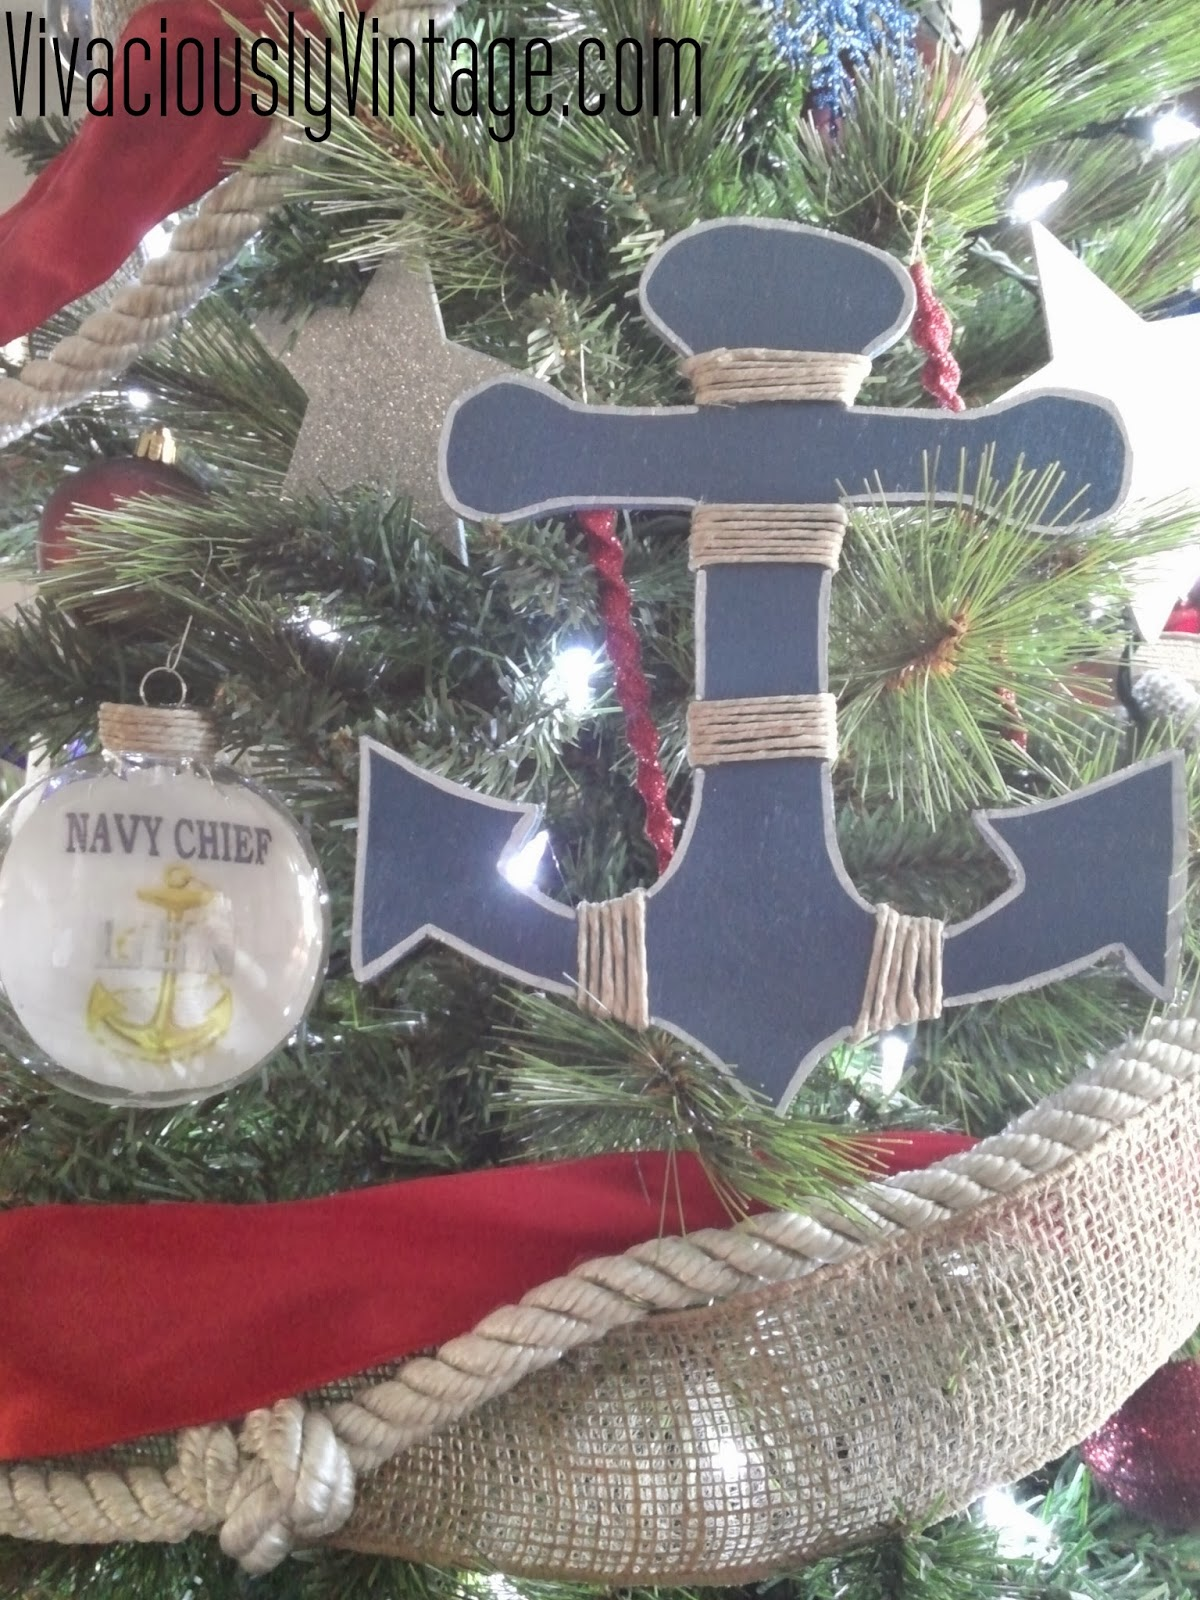 Nautical tree ornaments - Overall His Christmas Tree Has A Nautical Theme I Do Confess To Wanting One Of These For Myself I Was Also Sure To Add Other Touches That Have To Do With